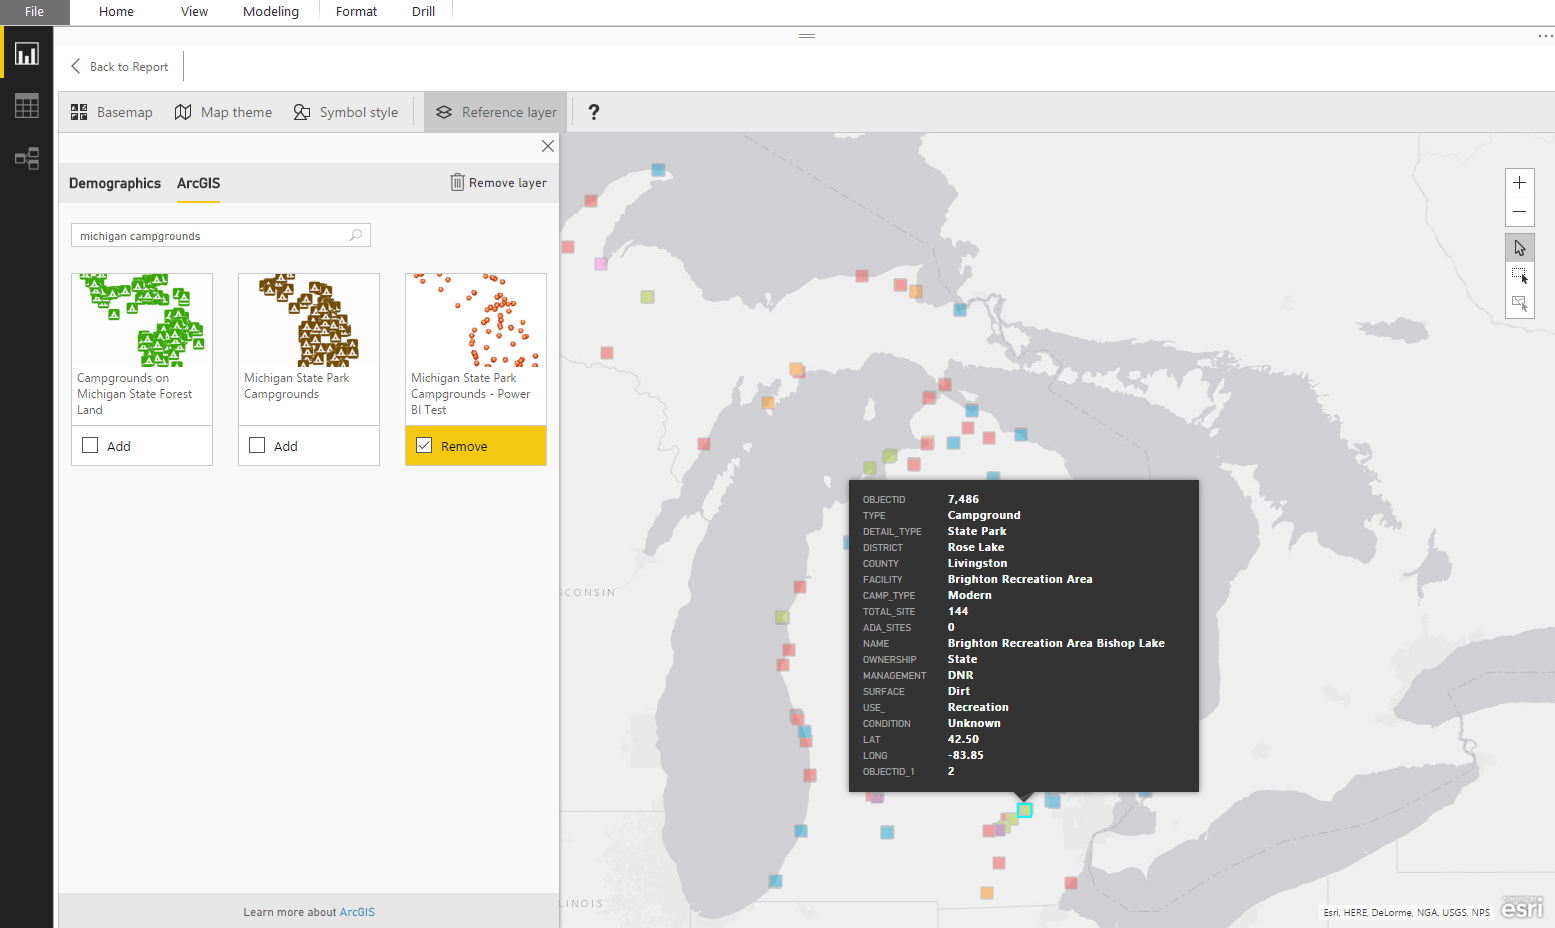 How To Add Your Own ArcGIS Reference Layers for Power BI